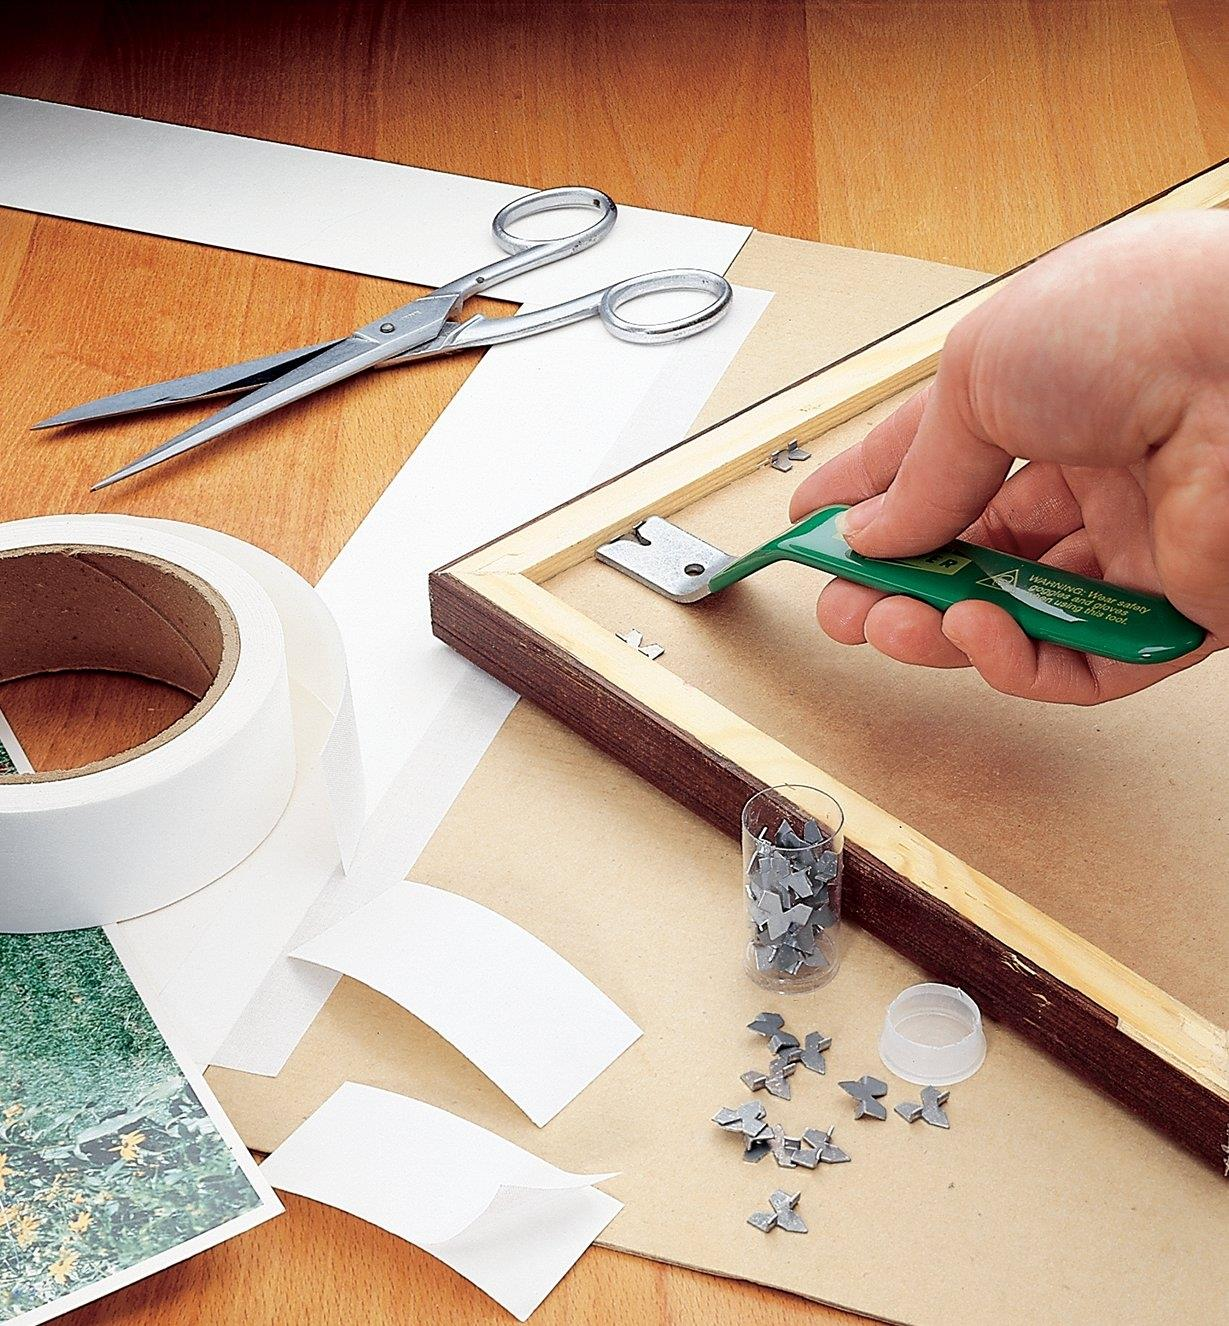 Driving glazier's points into a wooden picture frame with a PushMate Tool